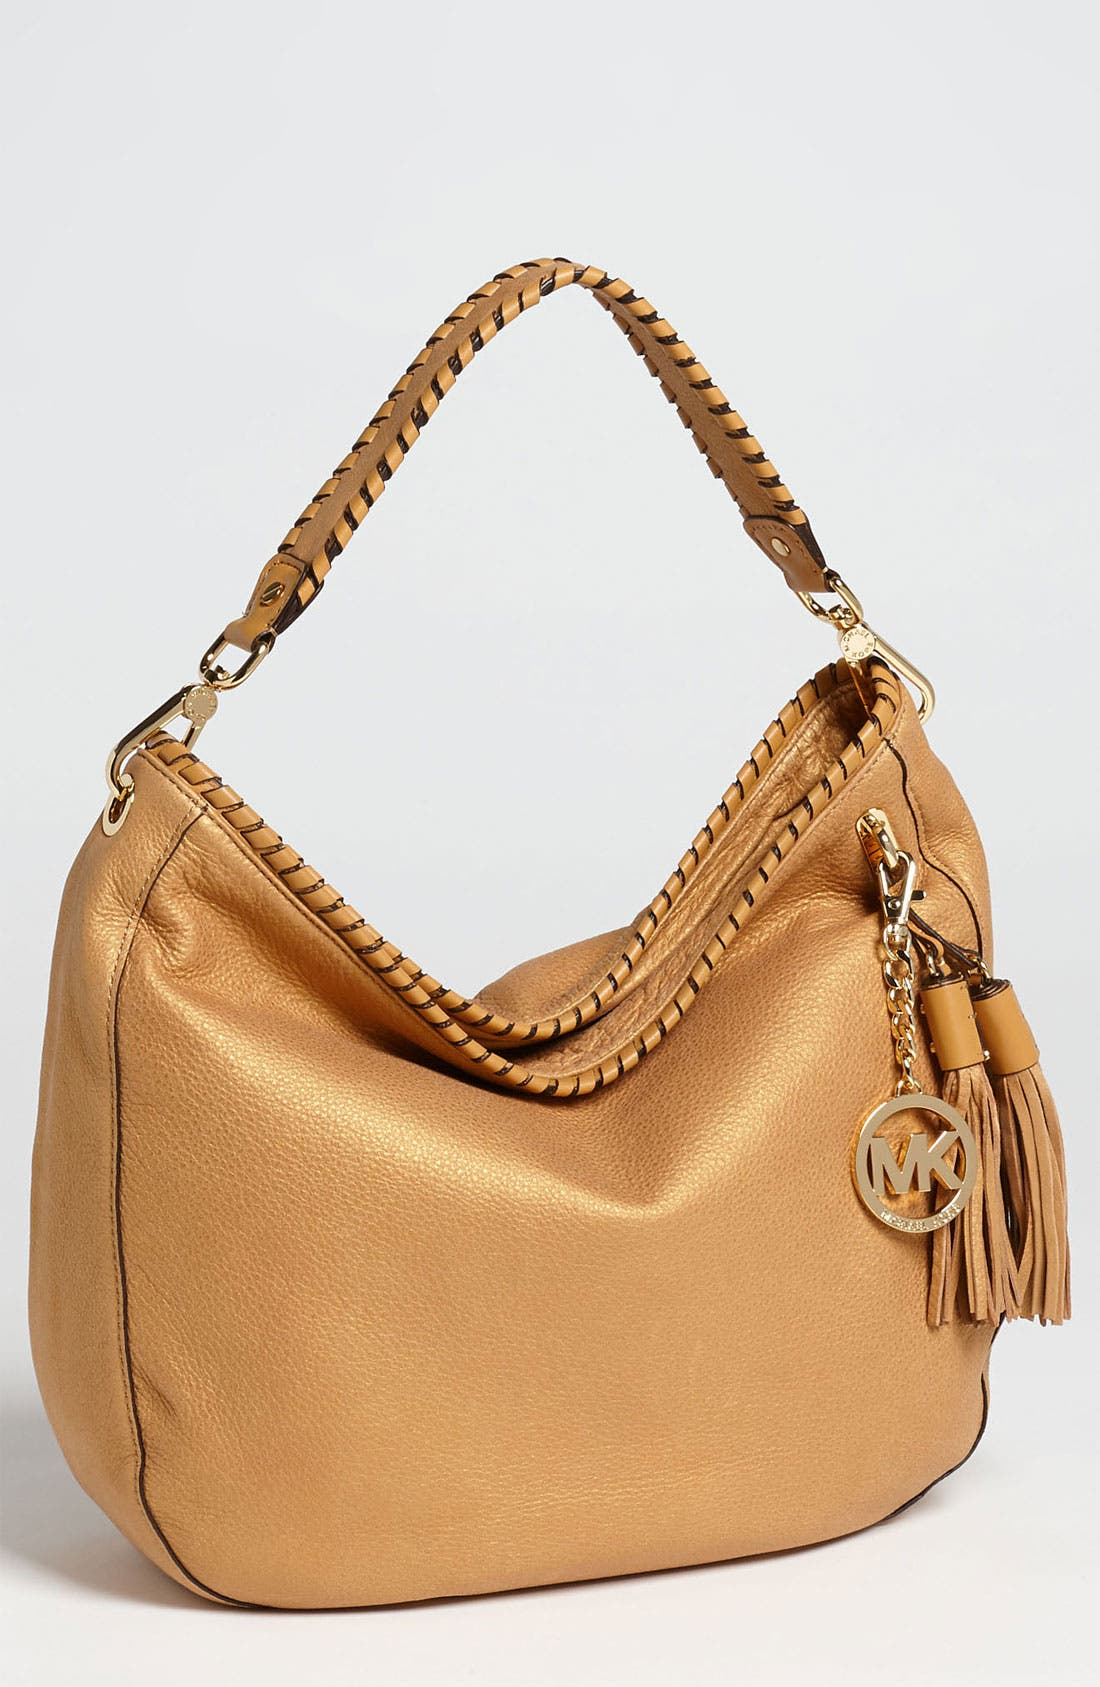 Main Image - MICHAEL Michael Kors 'Bennet - Large' Glazed Nubuck Shoulder Bag